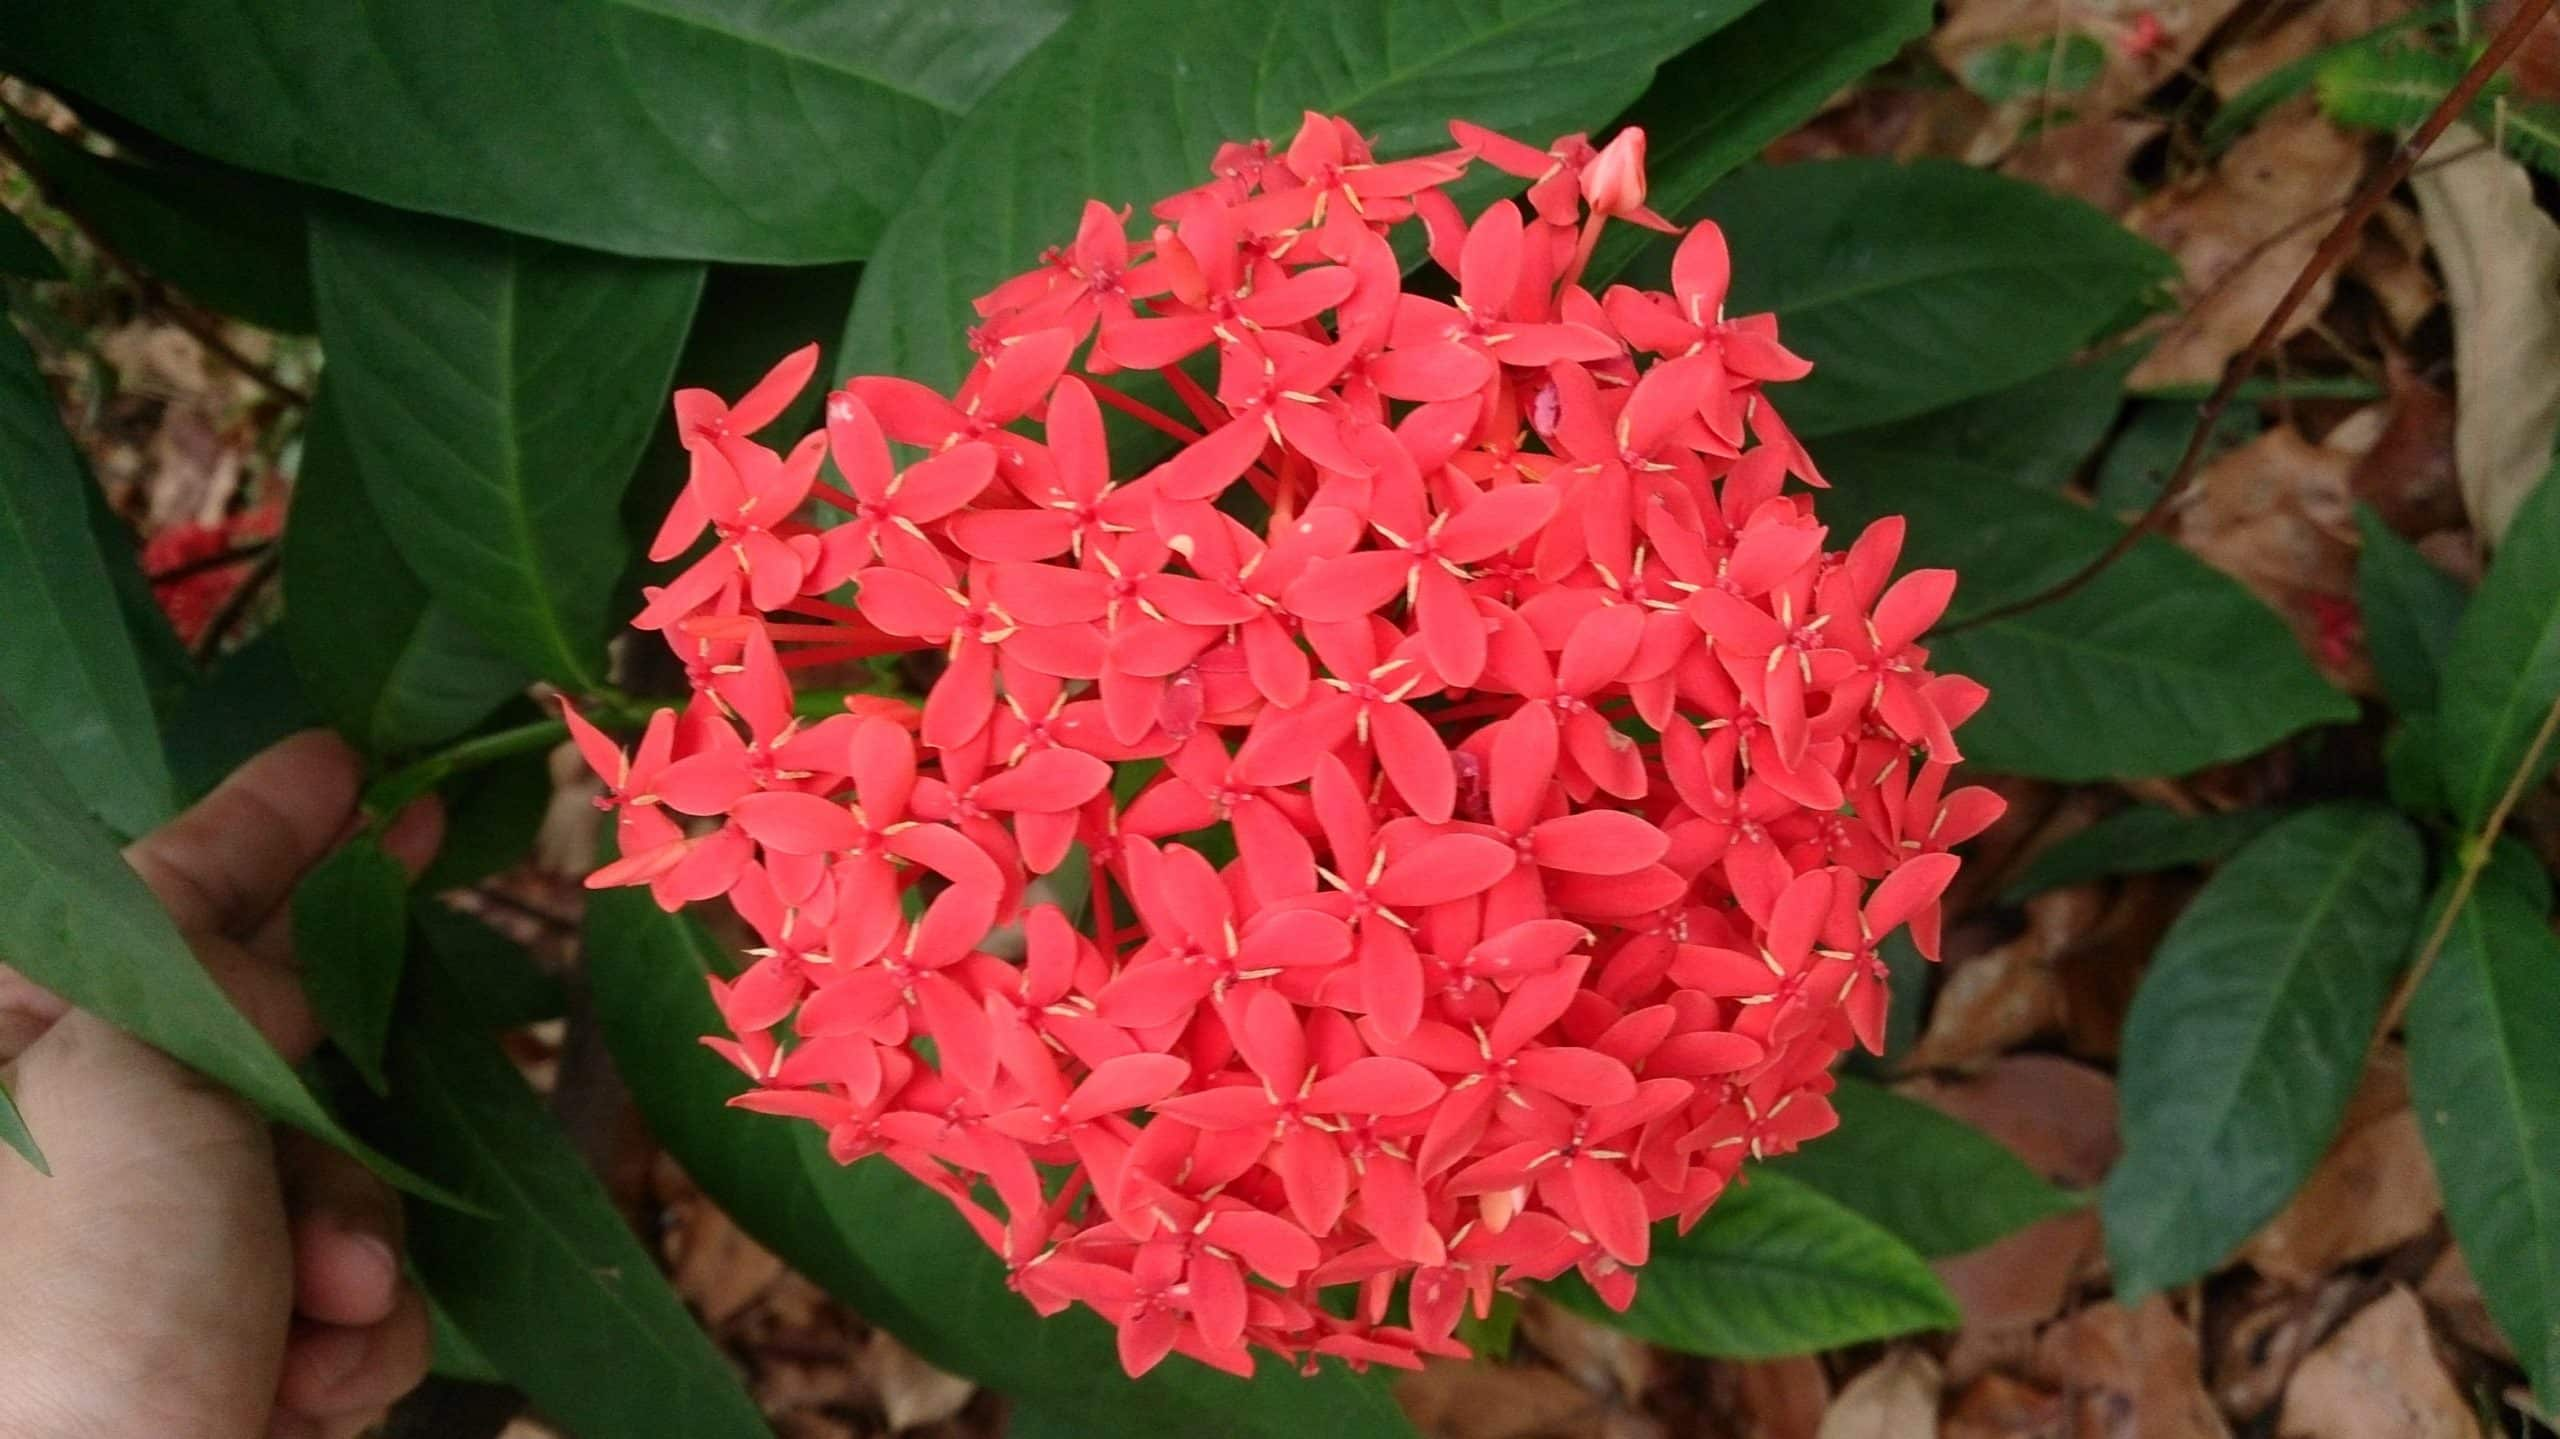 Ixora is also known as the West Indian Jasmine Flower.